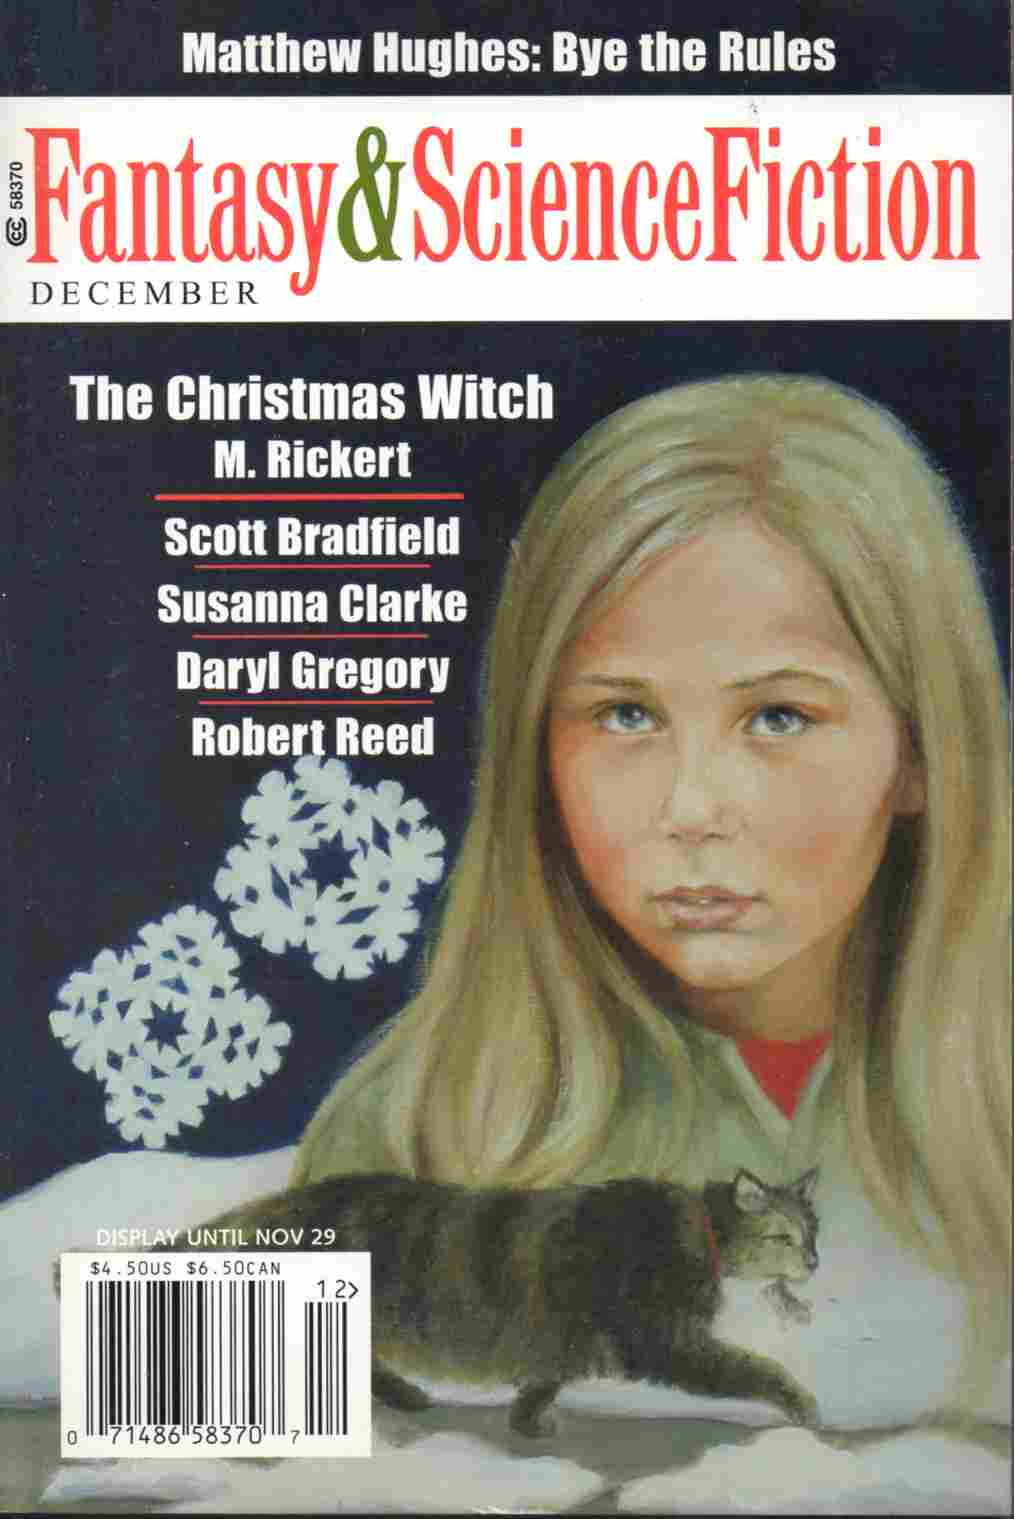 Fantasy & Science Fiction, December 2006, by Laurie Harden